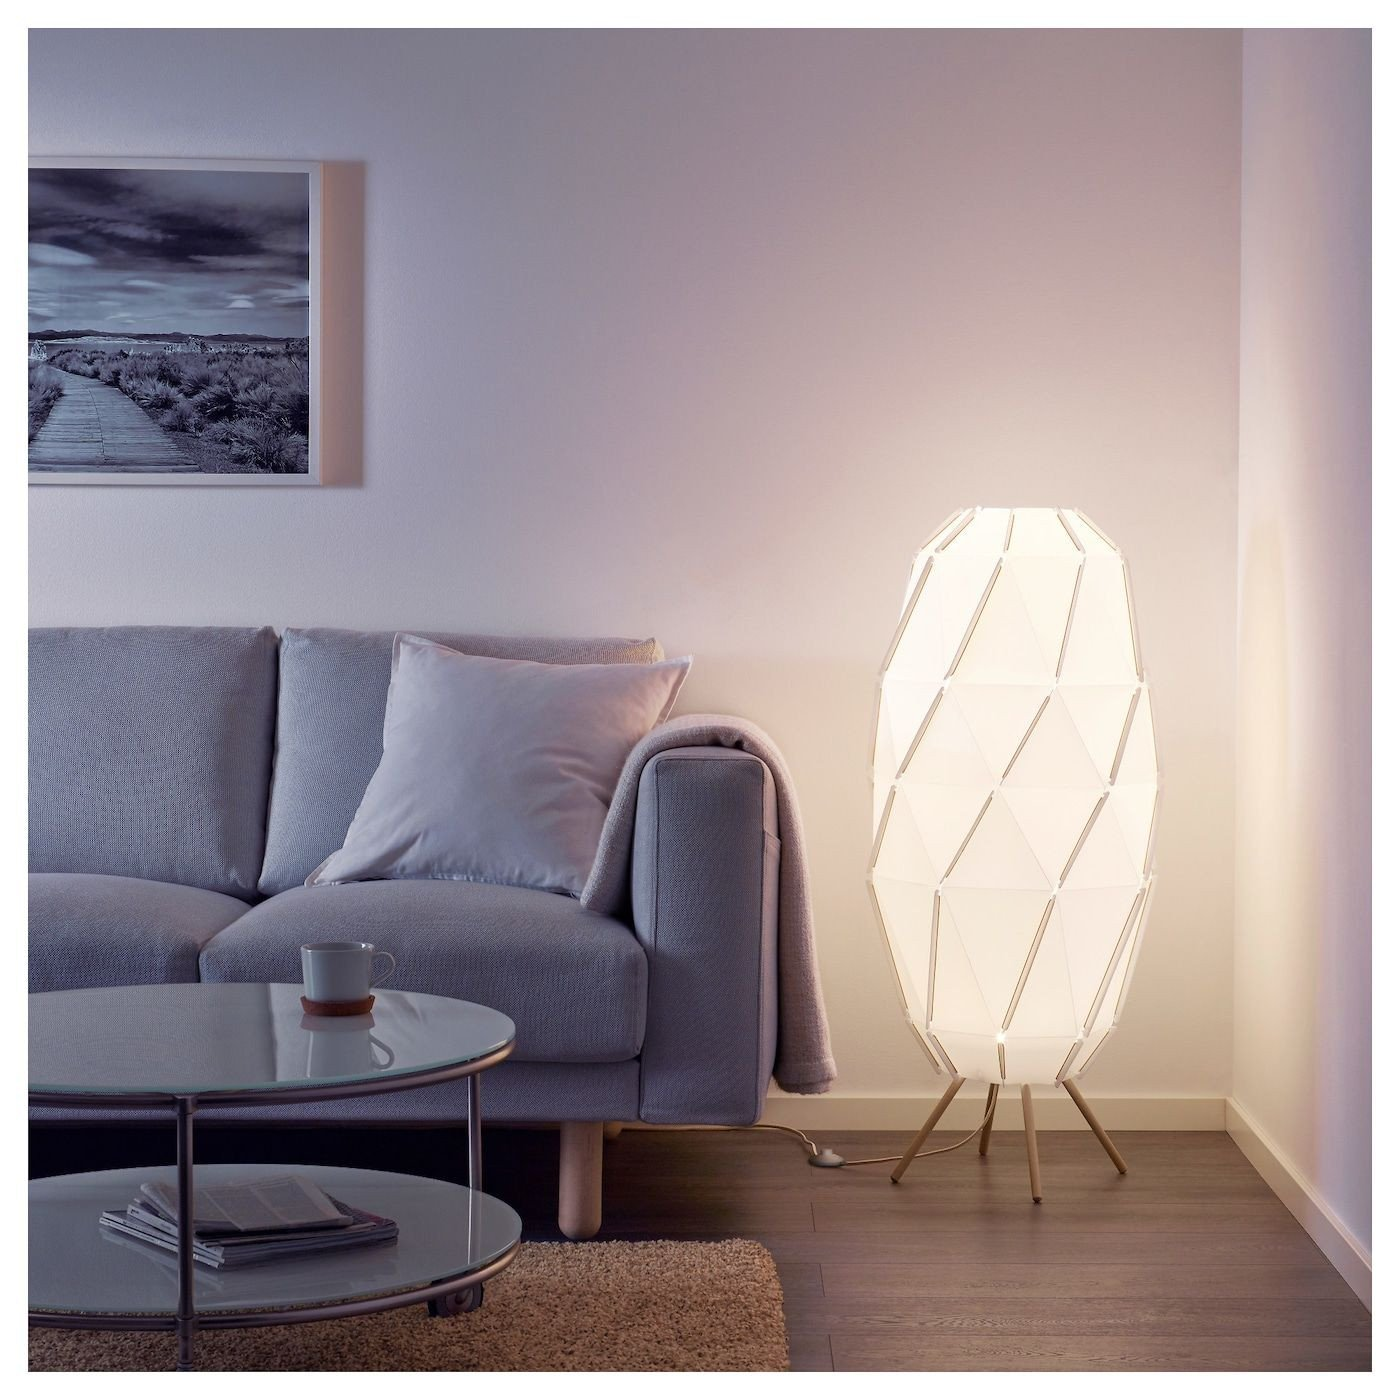 Floor Lamp for Bedroom Inspirational Sj–penna Floor Lamp with Led Bulb White